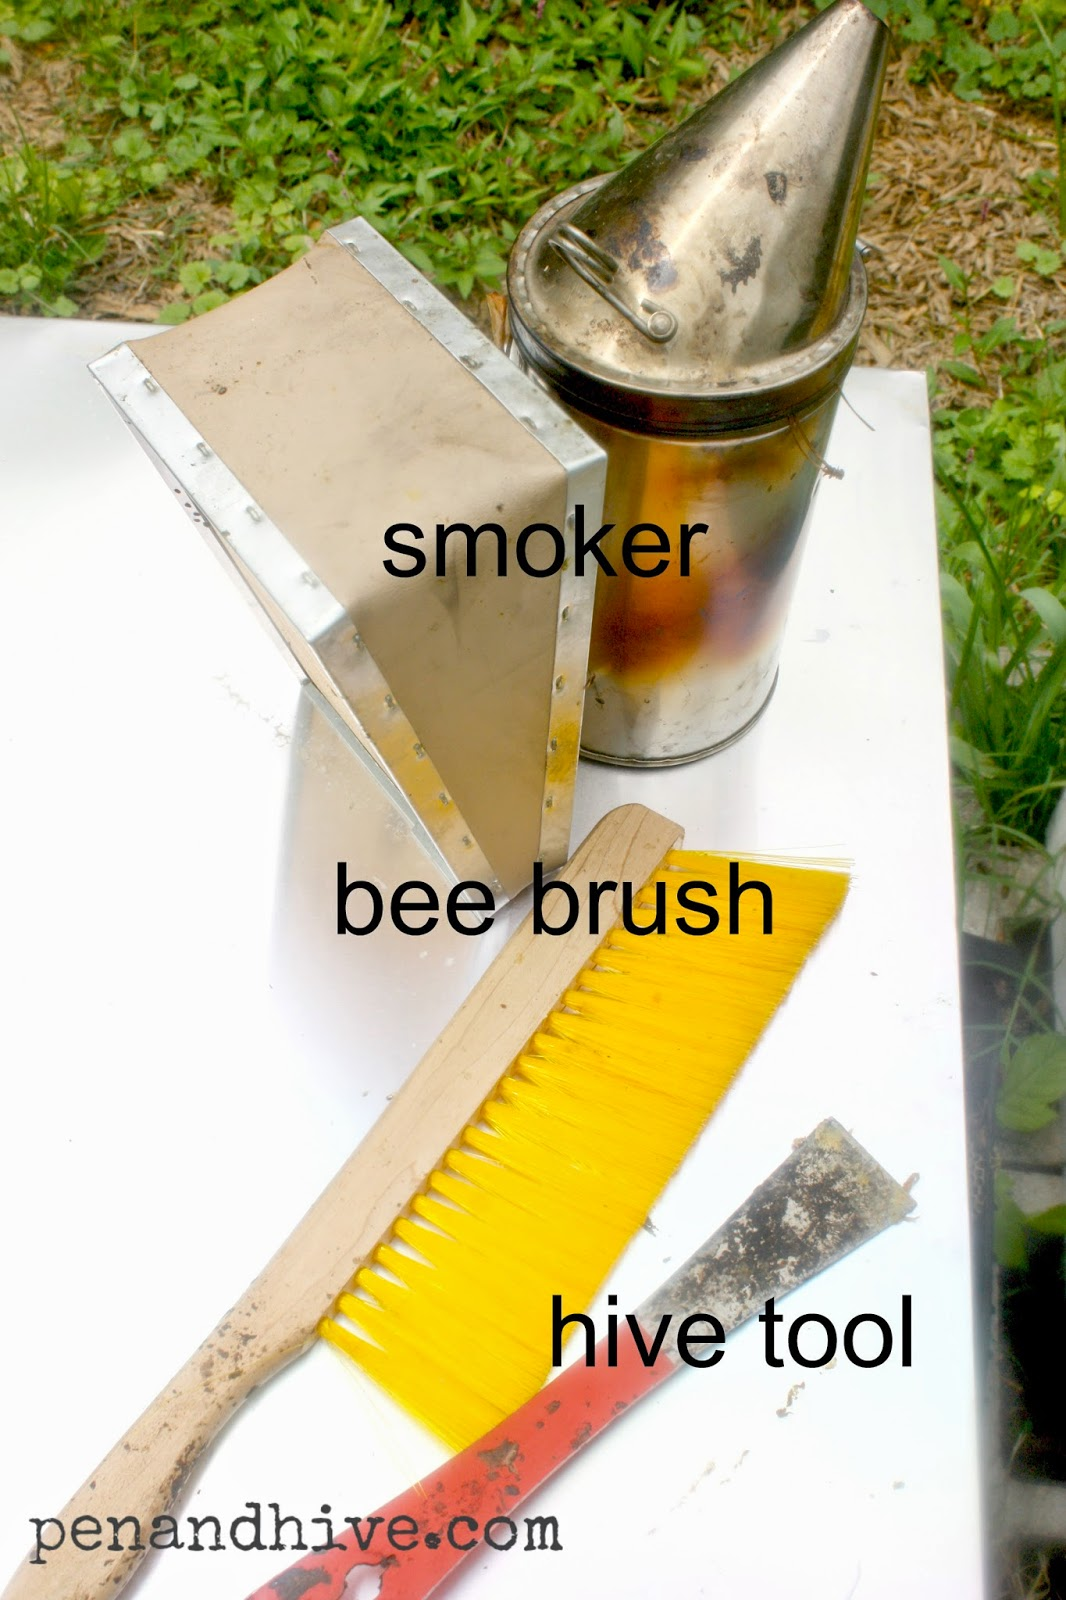 hive tool bee brush smoker